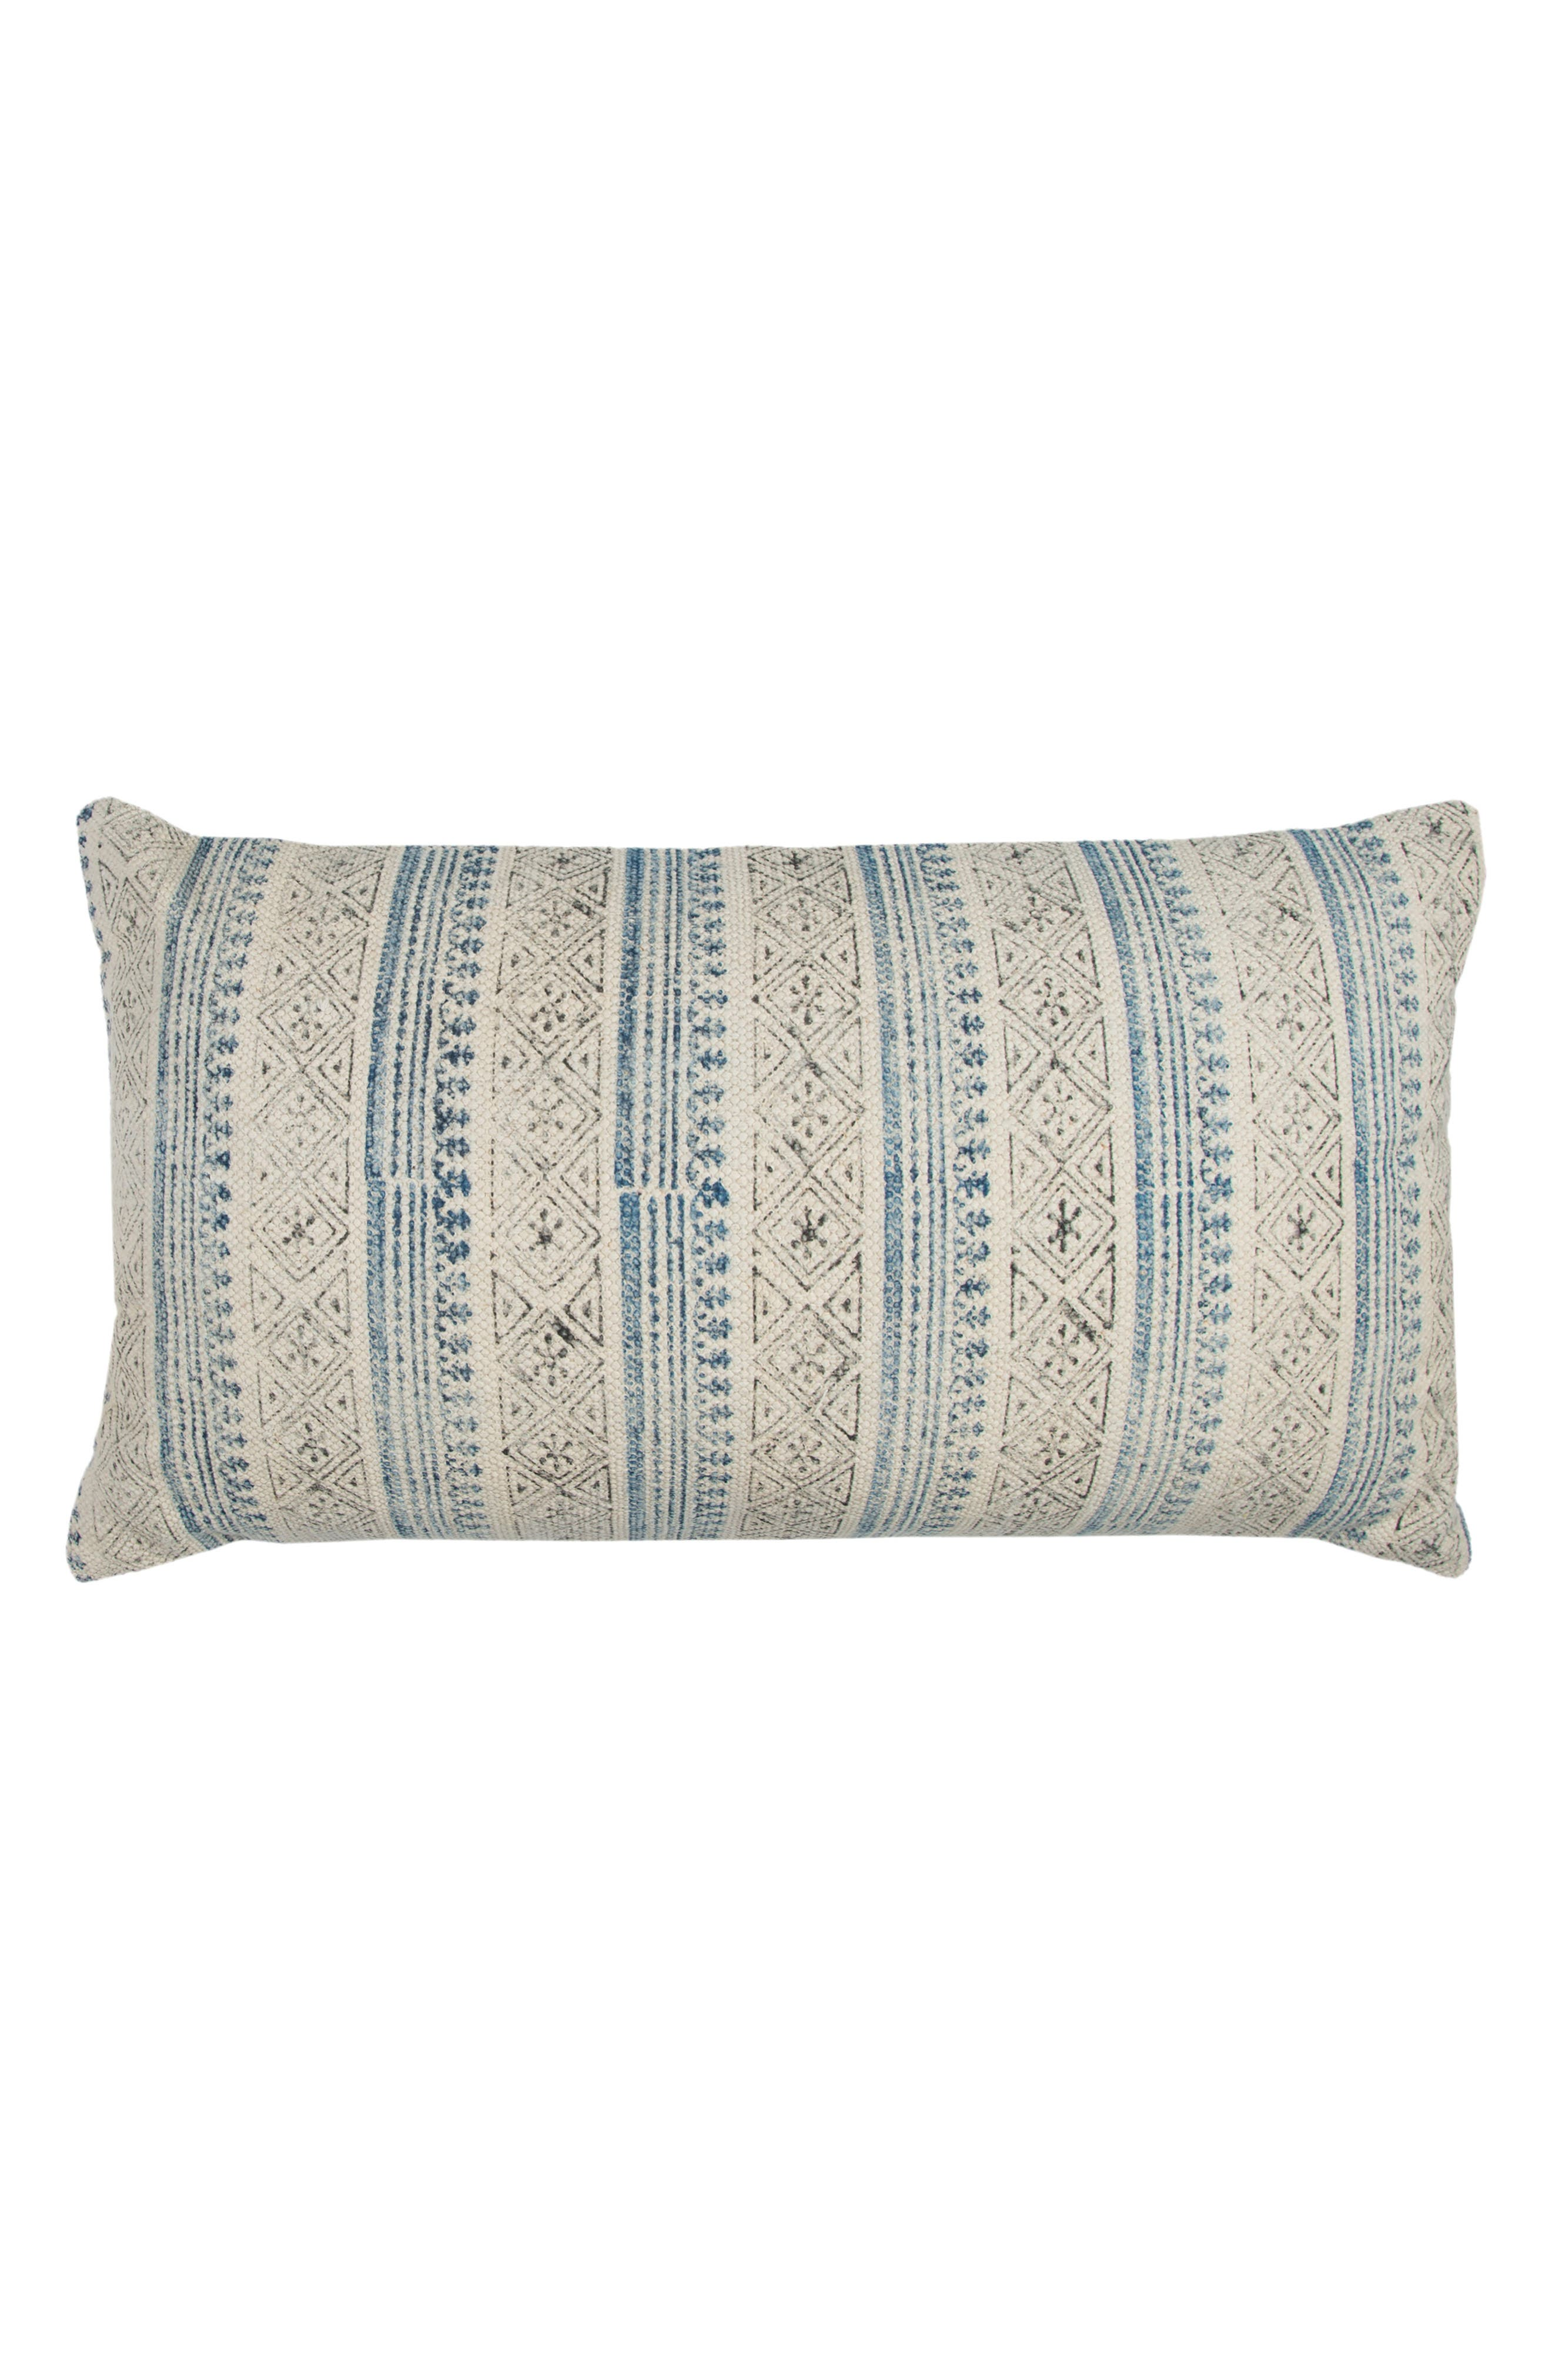 Stripe Accent Pillow,                         Main,                         color, Natural